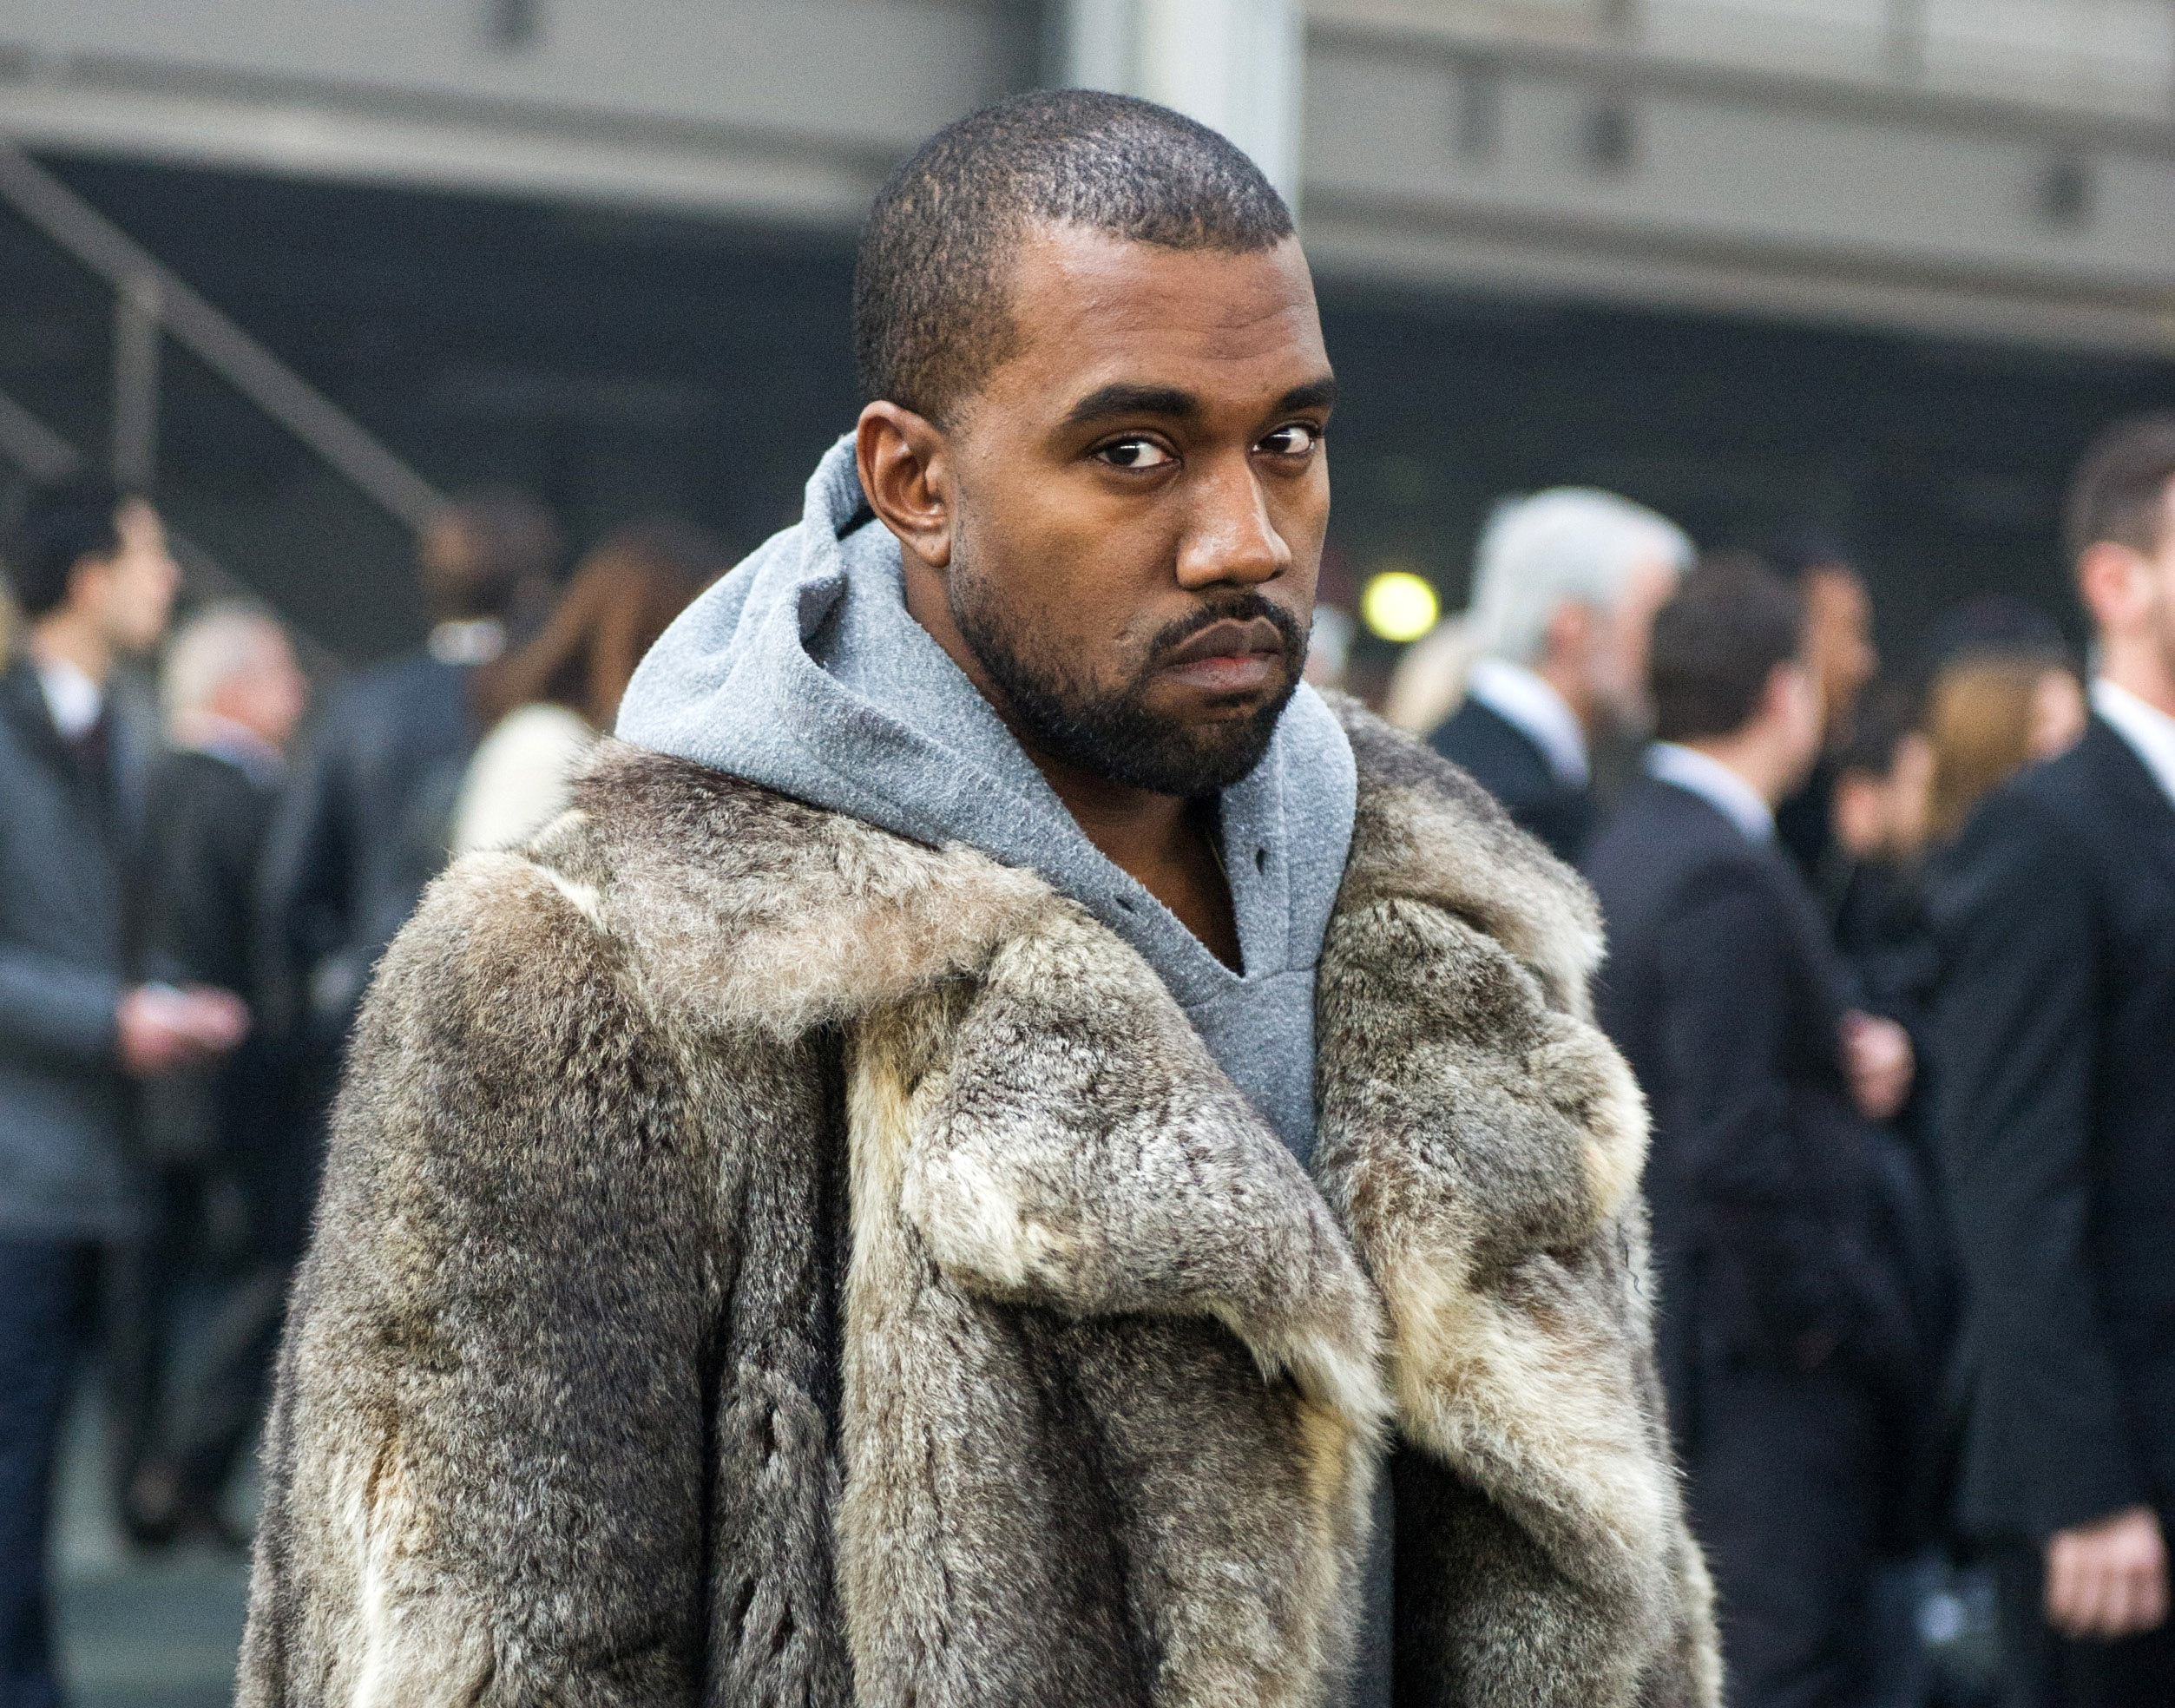 Fashion sense of Kanye West